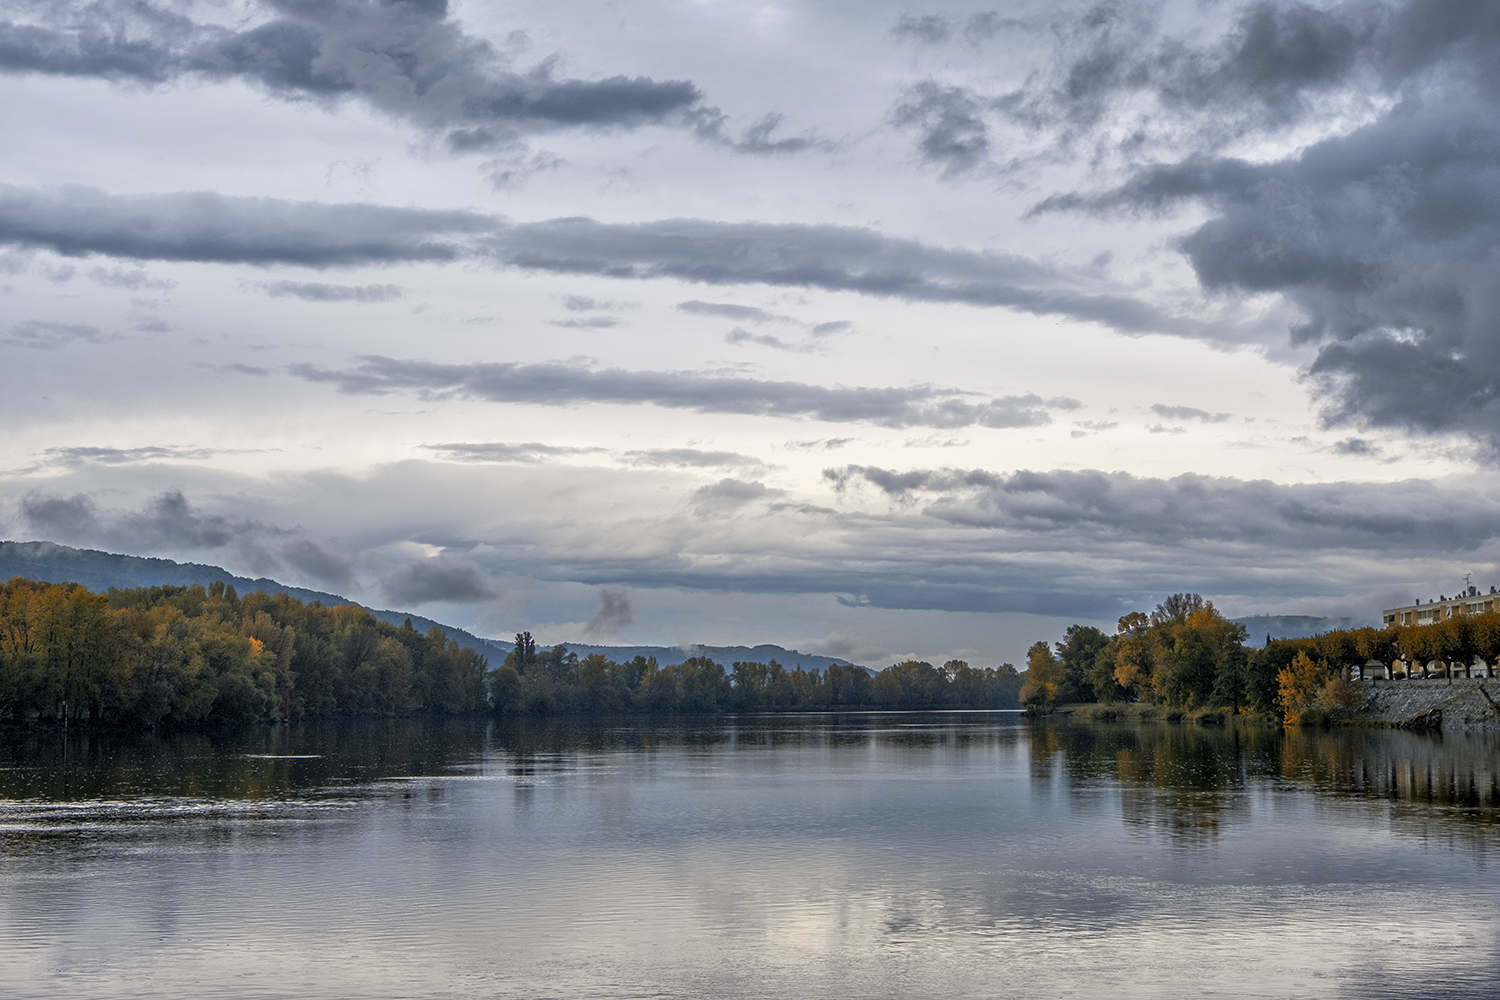 Rhone River, Tournon, France, October Afternoon